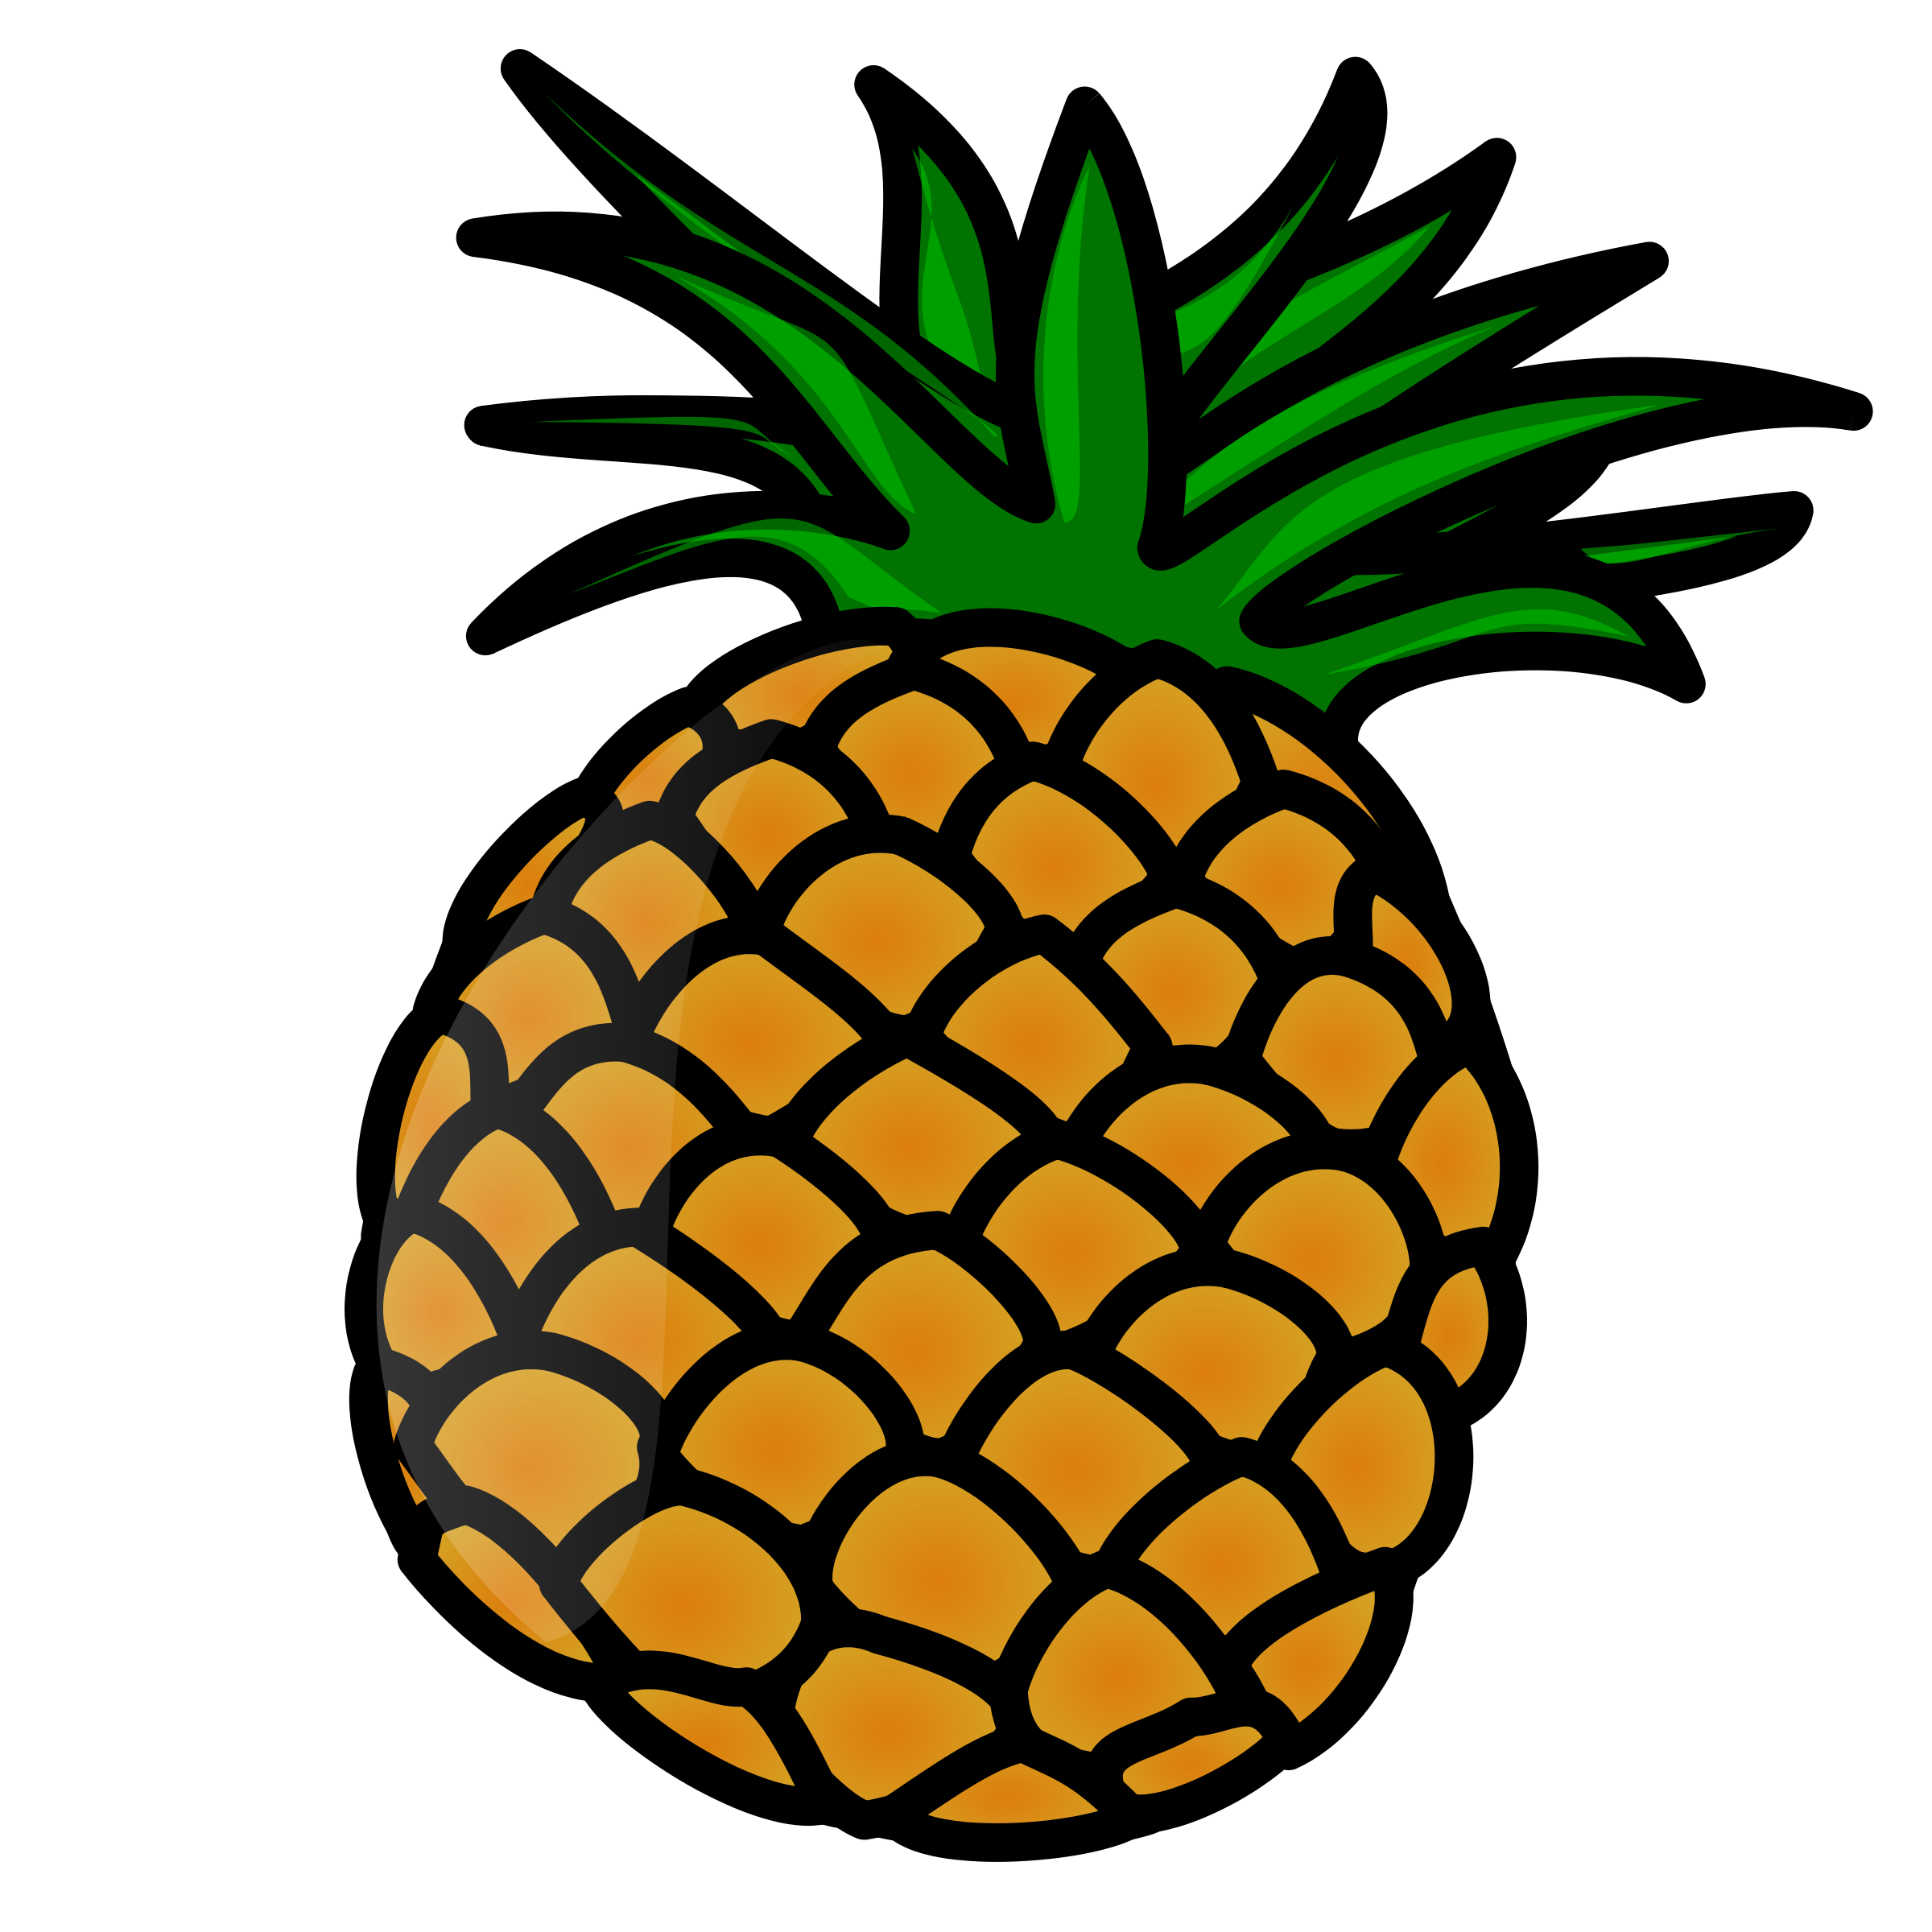 Pineapple clipart modern. Silhouette panda free images